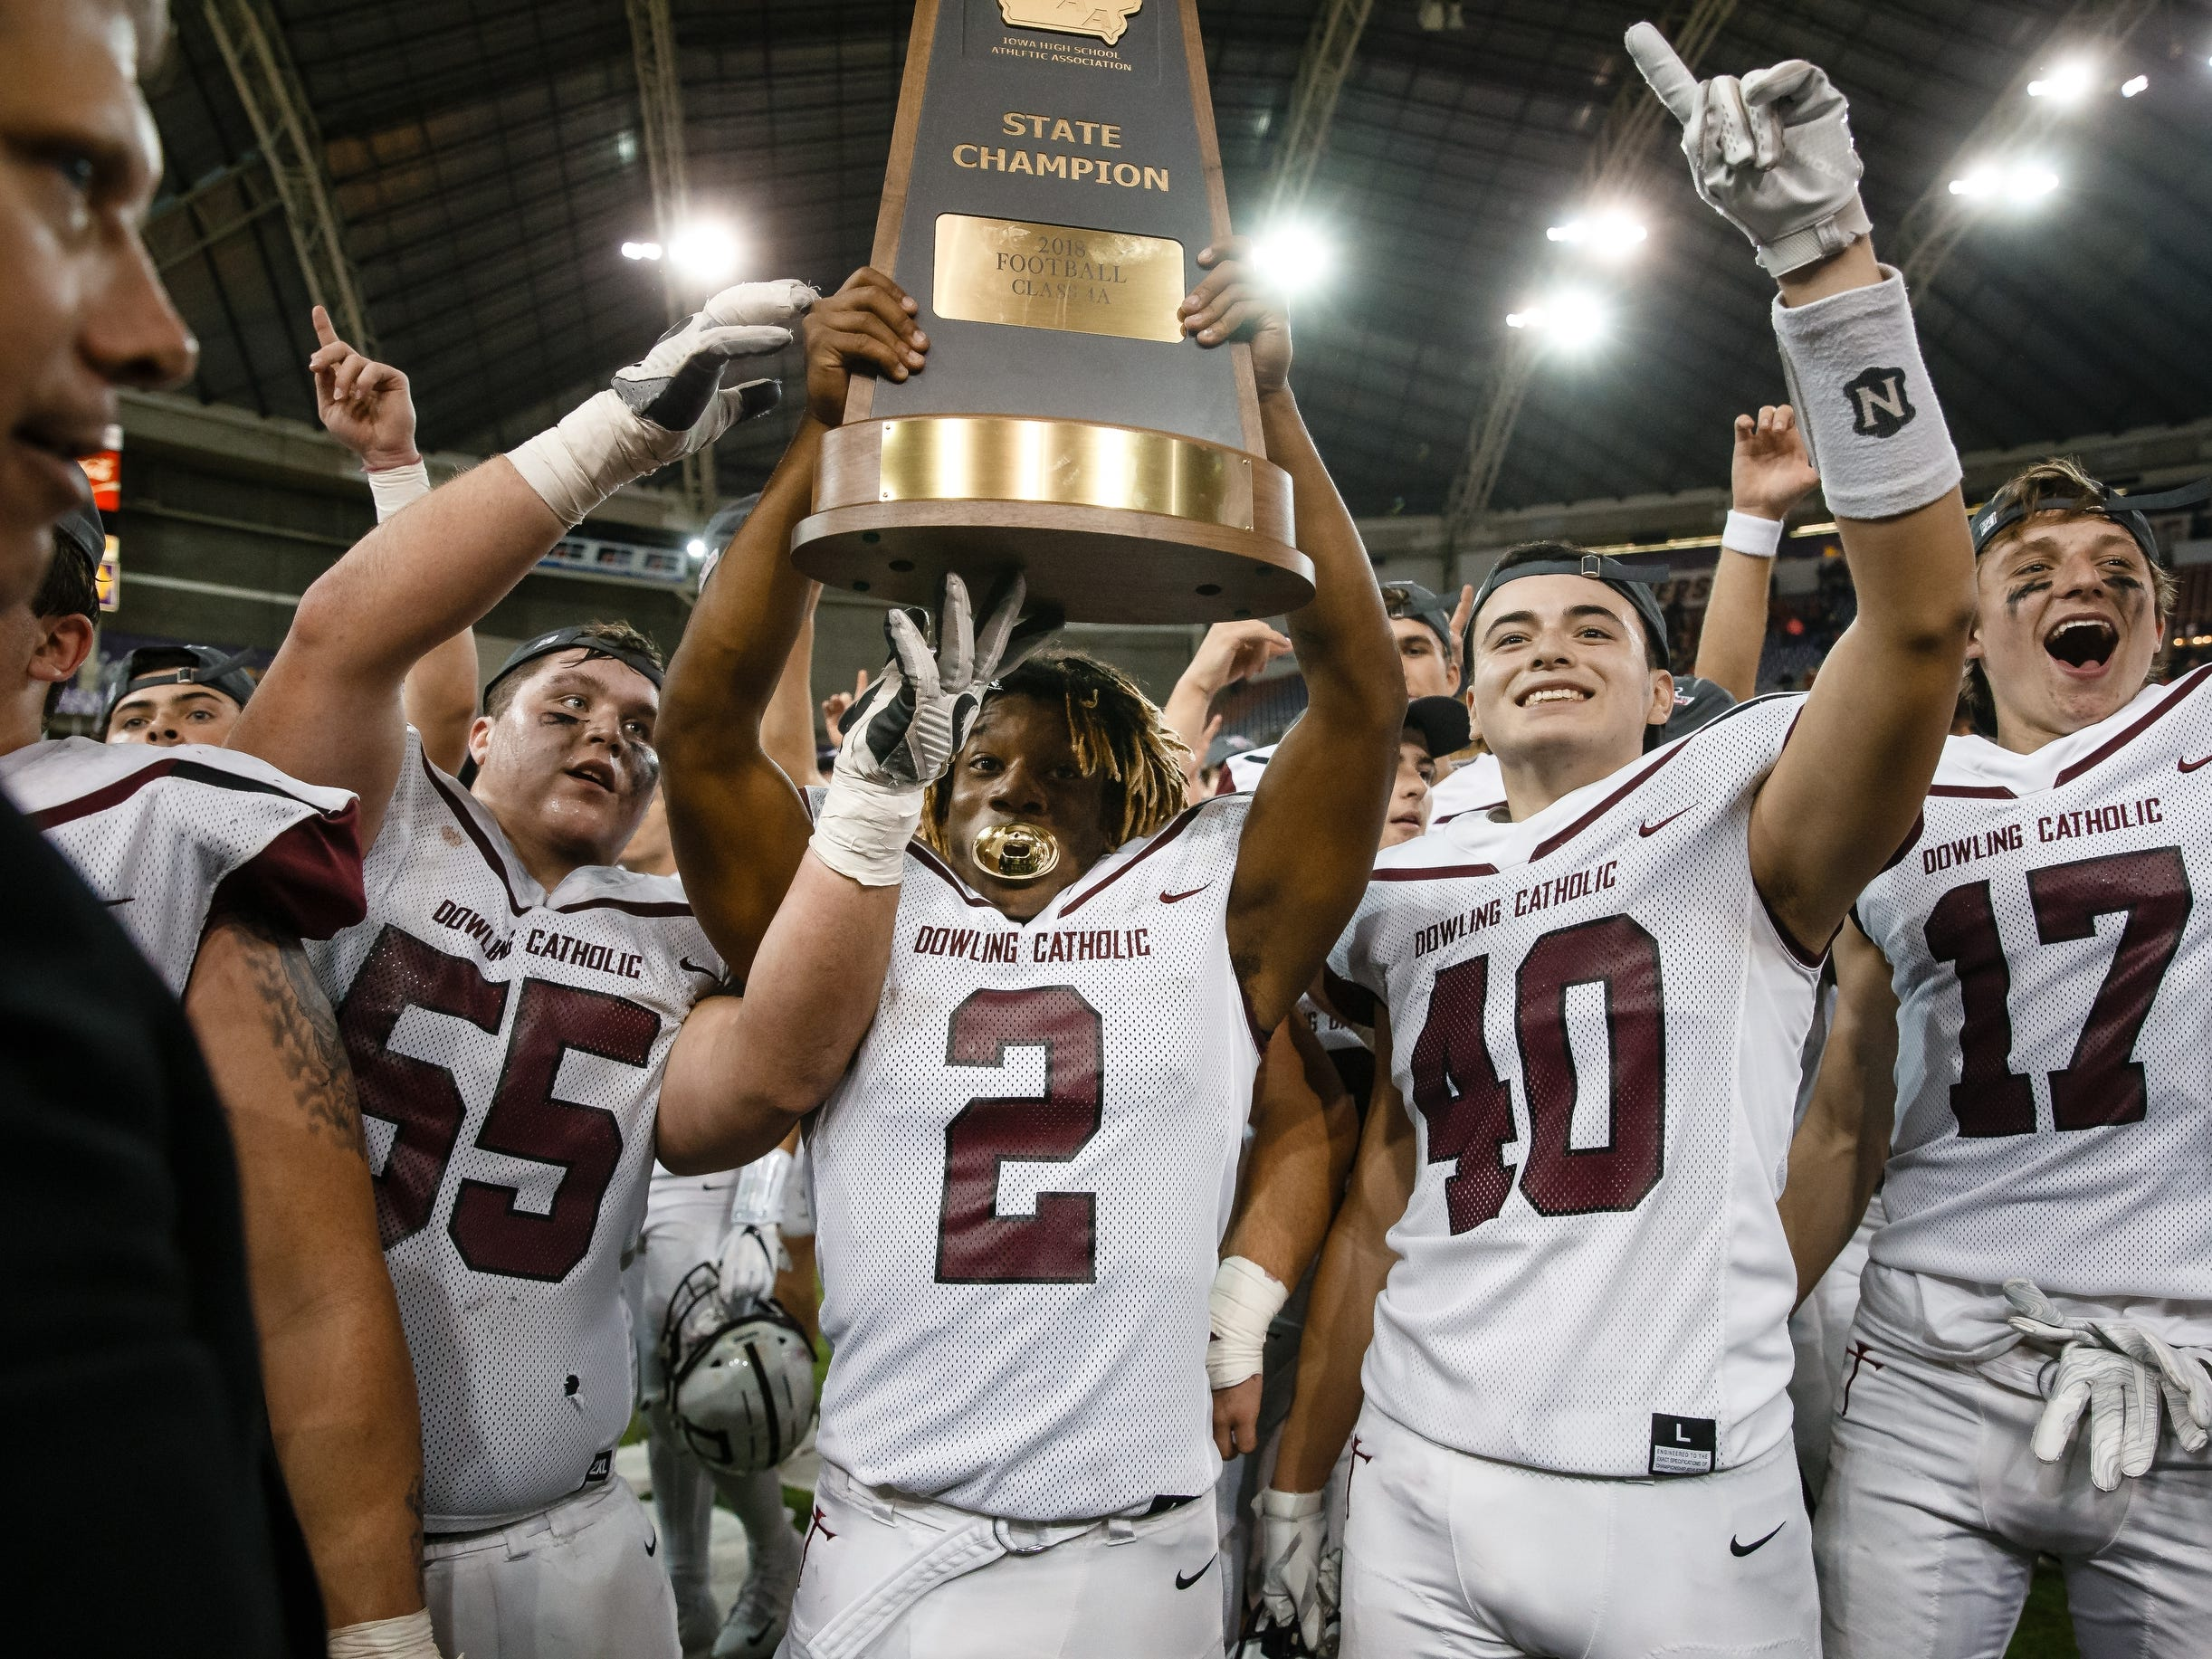 Dowling Catholic celebrates its 22-16 victory over Cedar Falls to win the class 4A state championship football game on Friday, Nov. 16, 2018, in Cedar Falls.